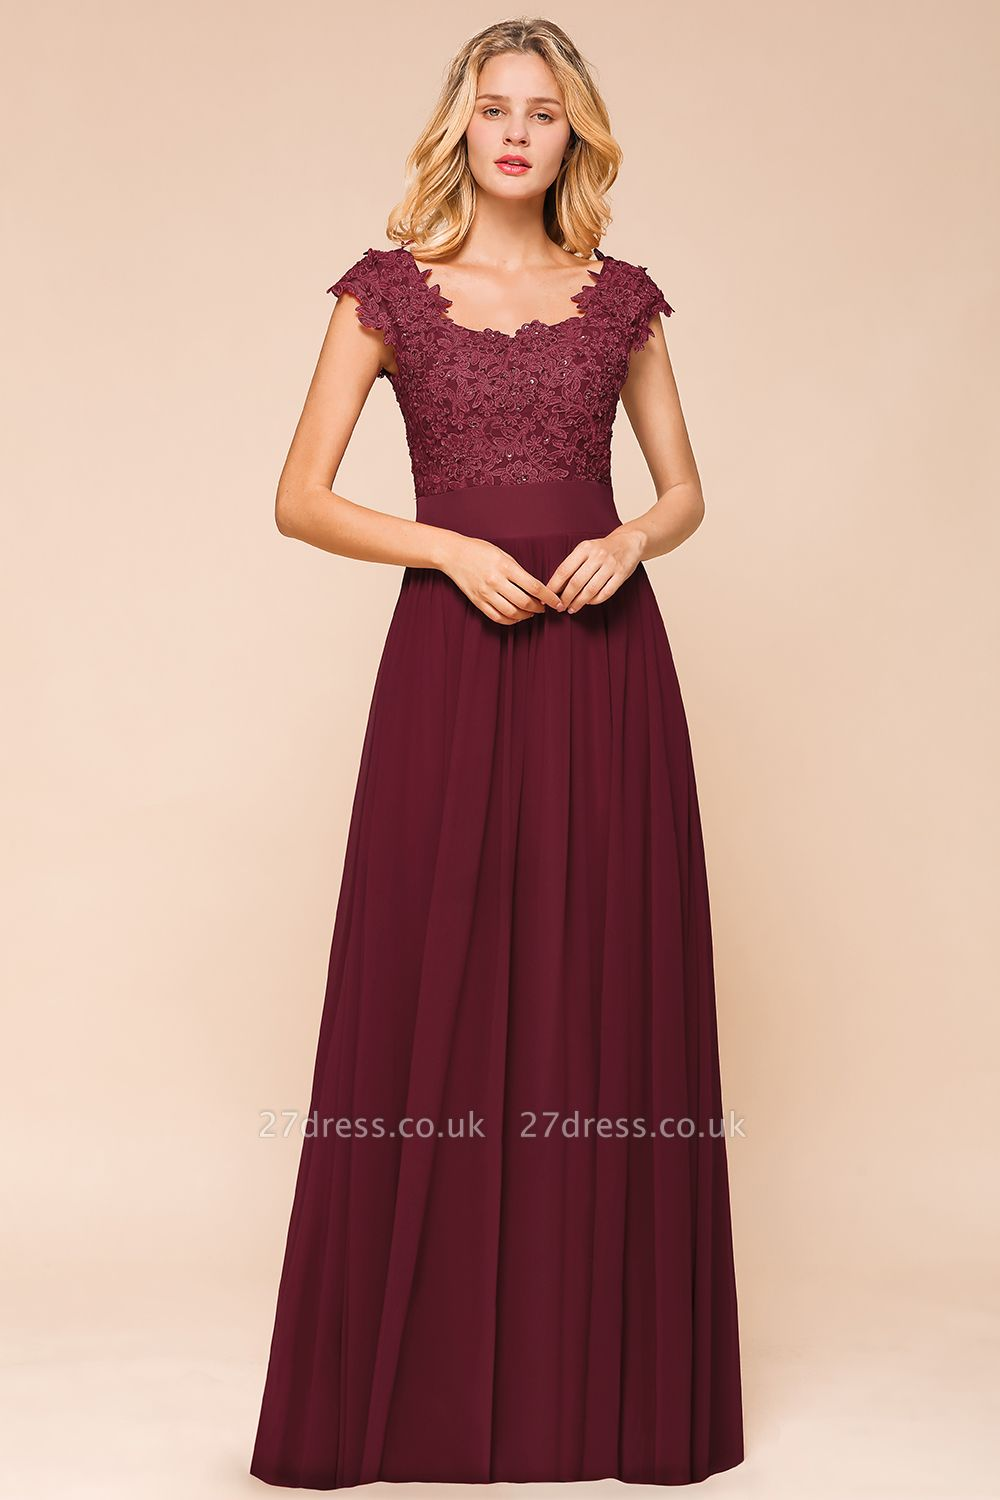 Sleeveless Lace Appliques Chiffon A-line Prom Gowns